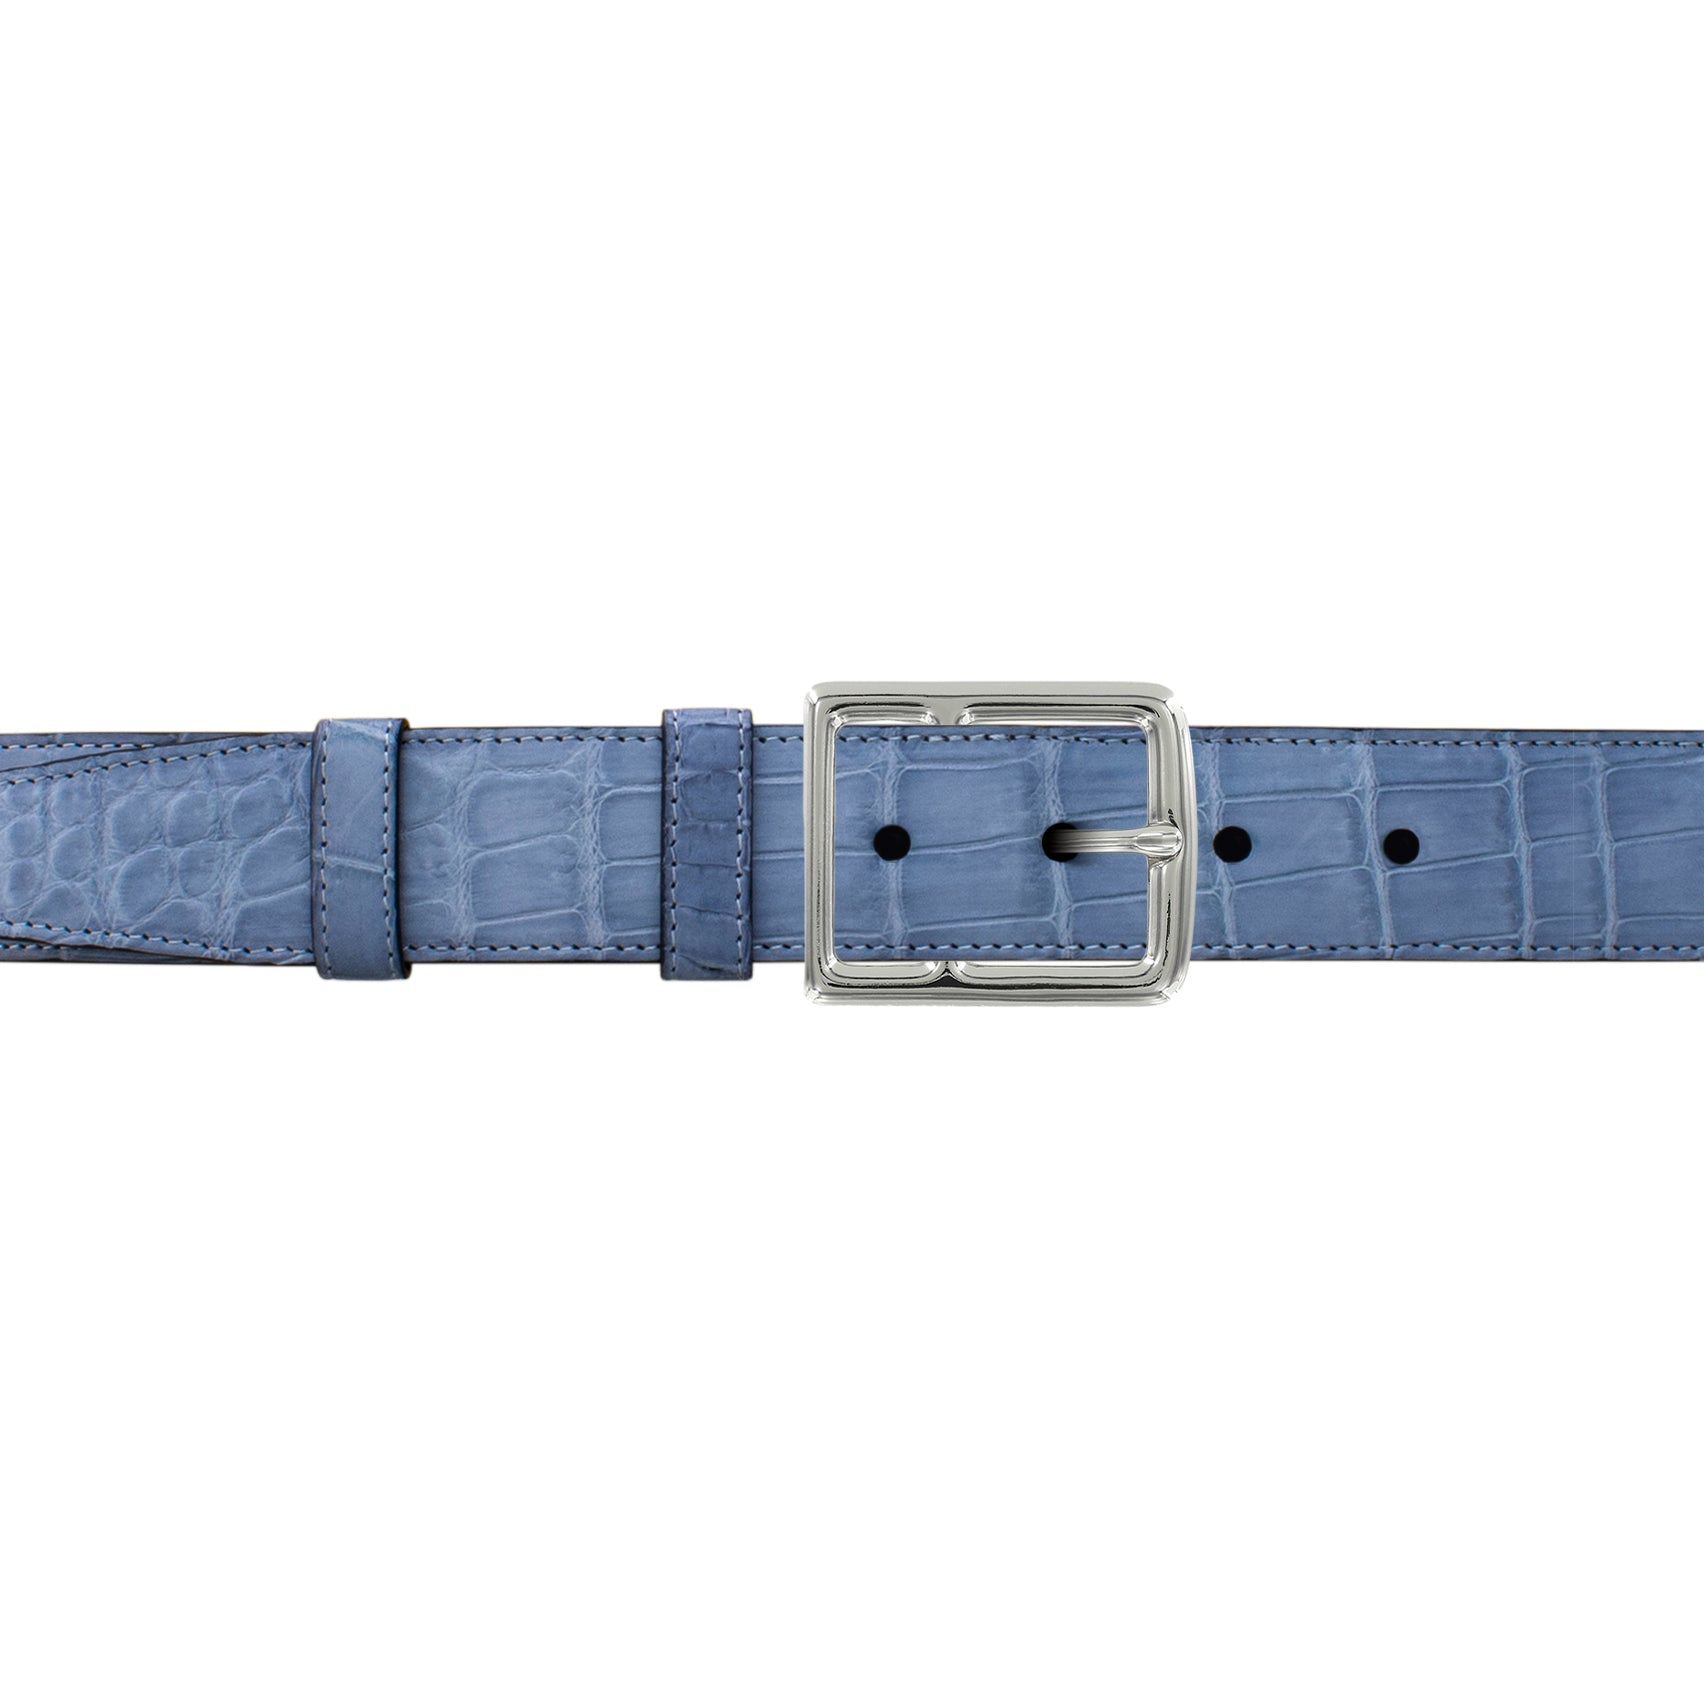 "1 1/4"" Arctic Classic Belt with Crawford Casual Buckle in Polished Nickel"